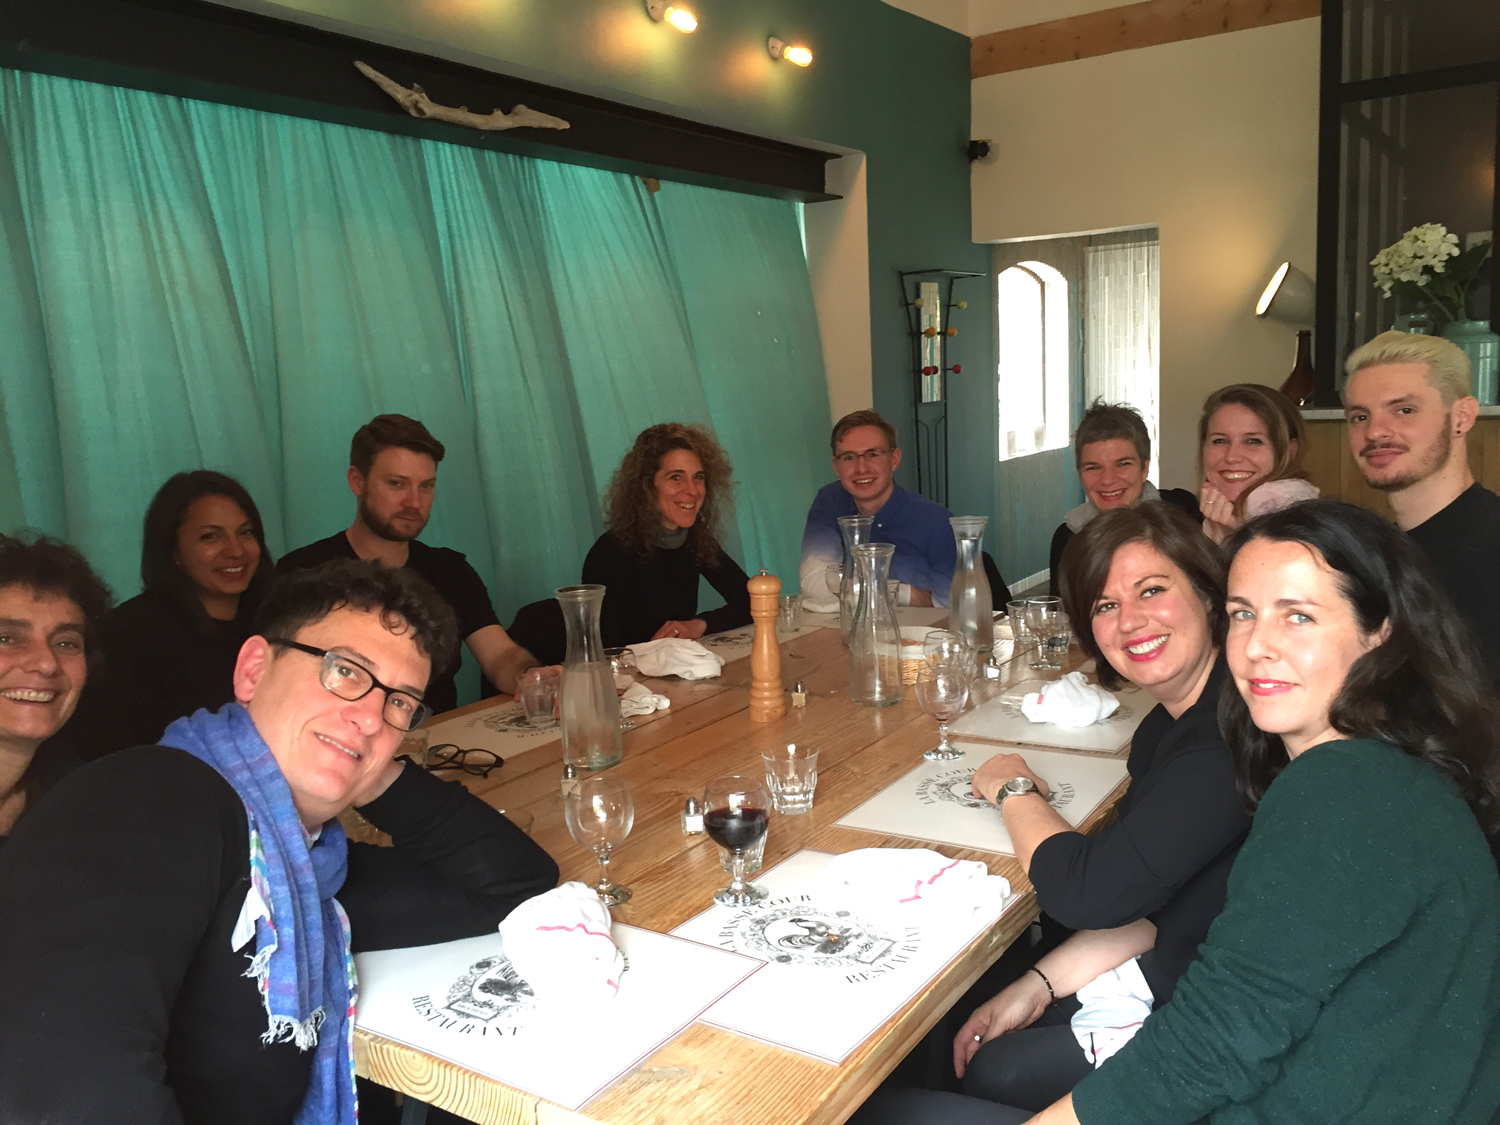 Lunch with all the workshop leaders and school director